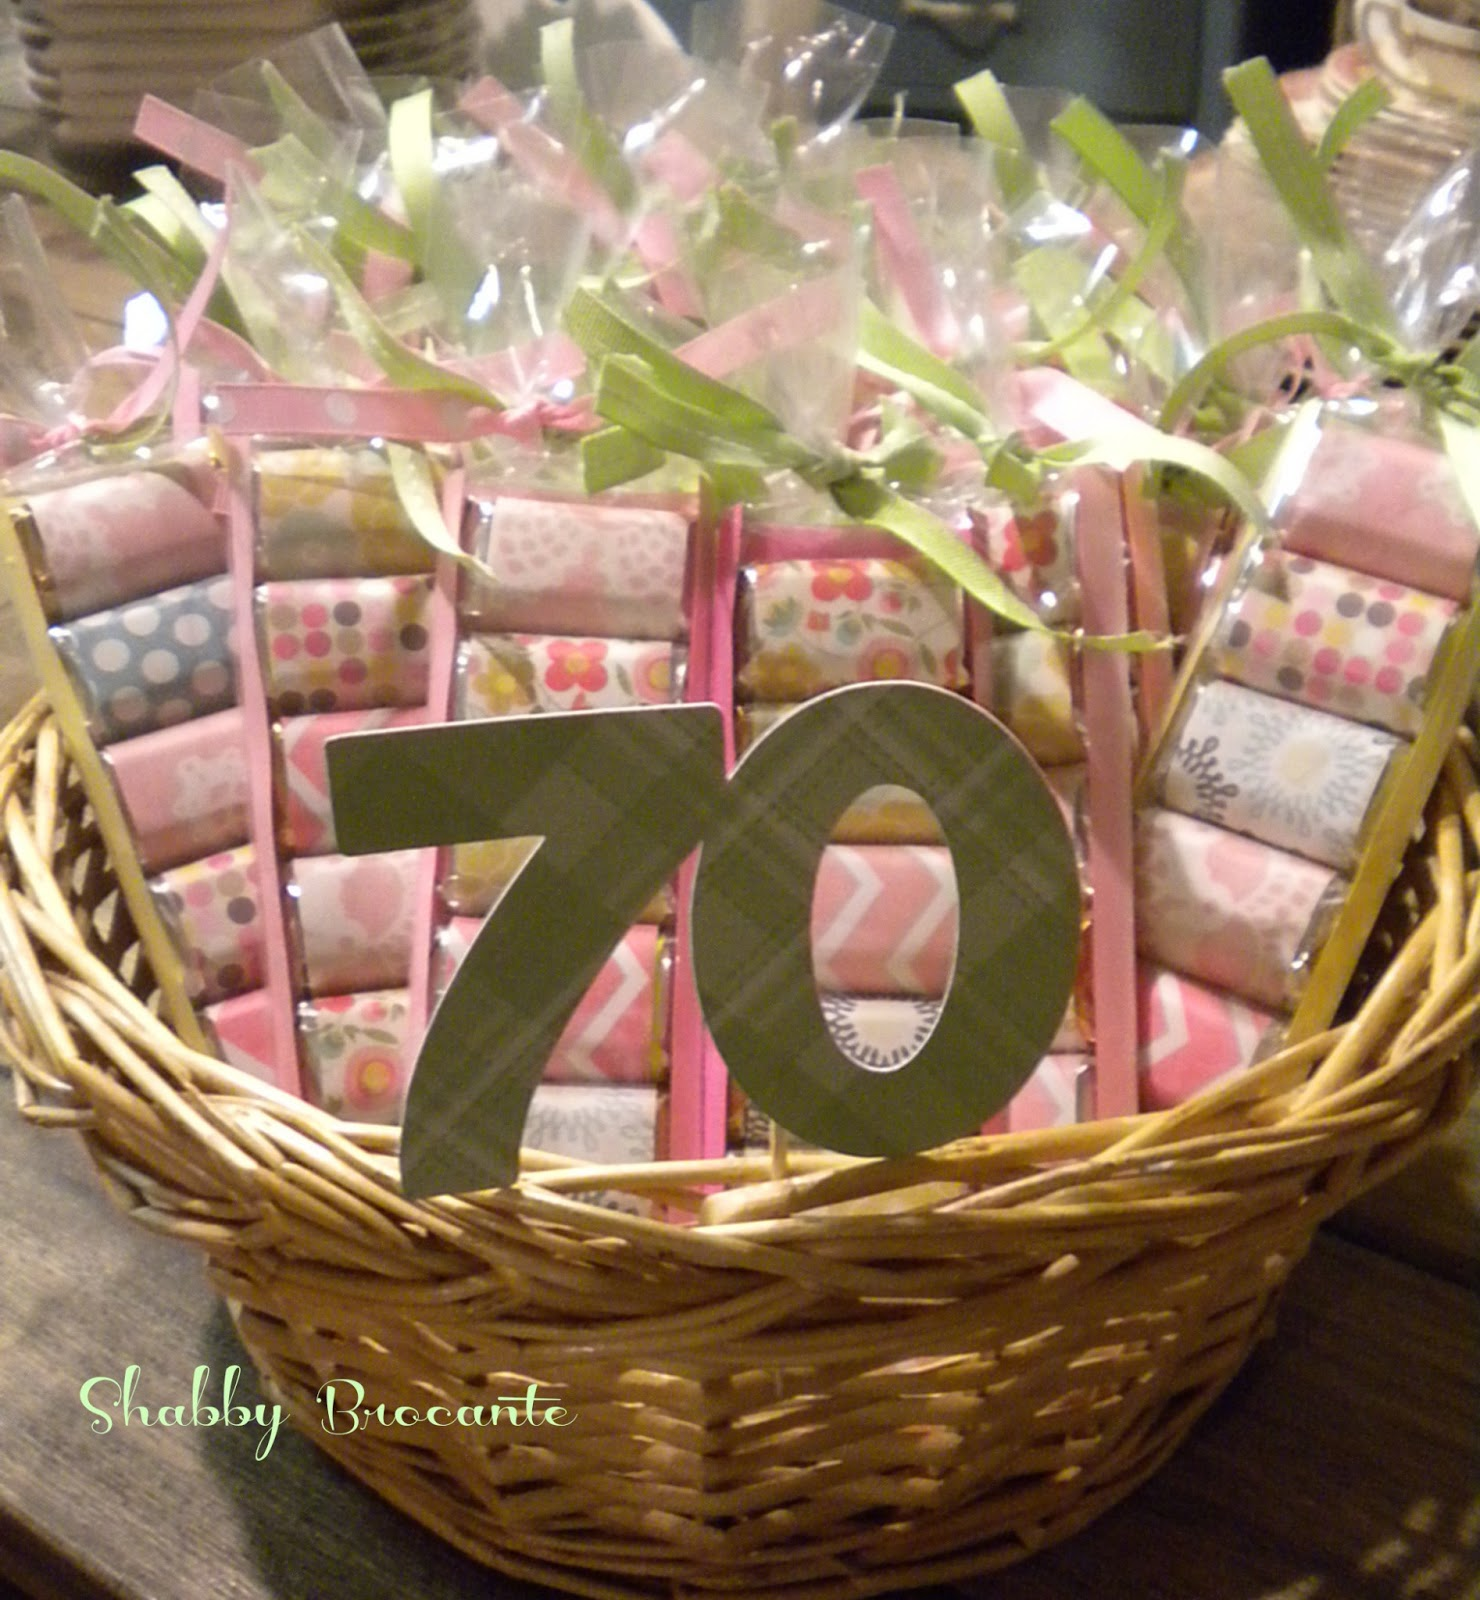 Shabby Brocante: Hersey's, Adult Party Favors